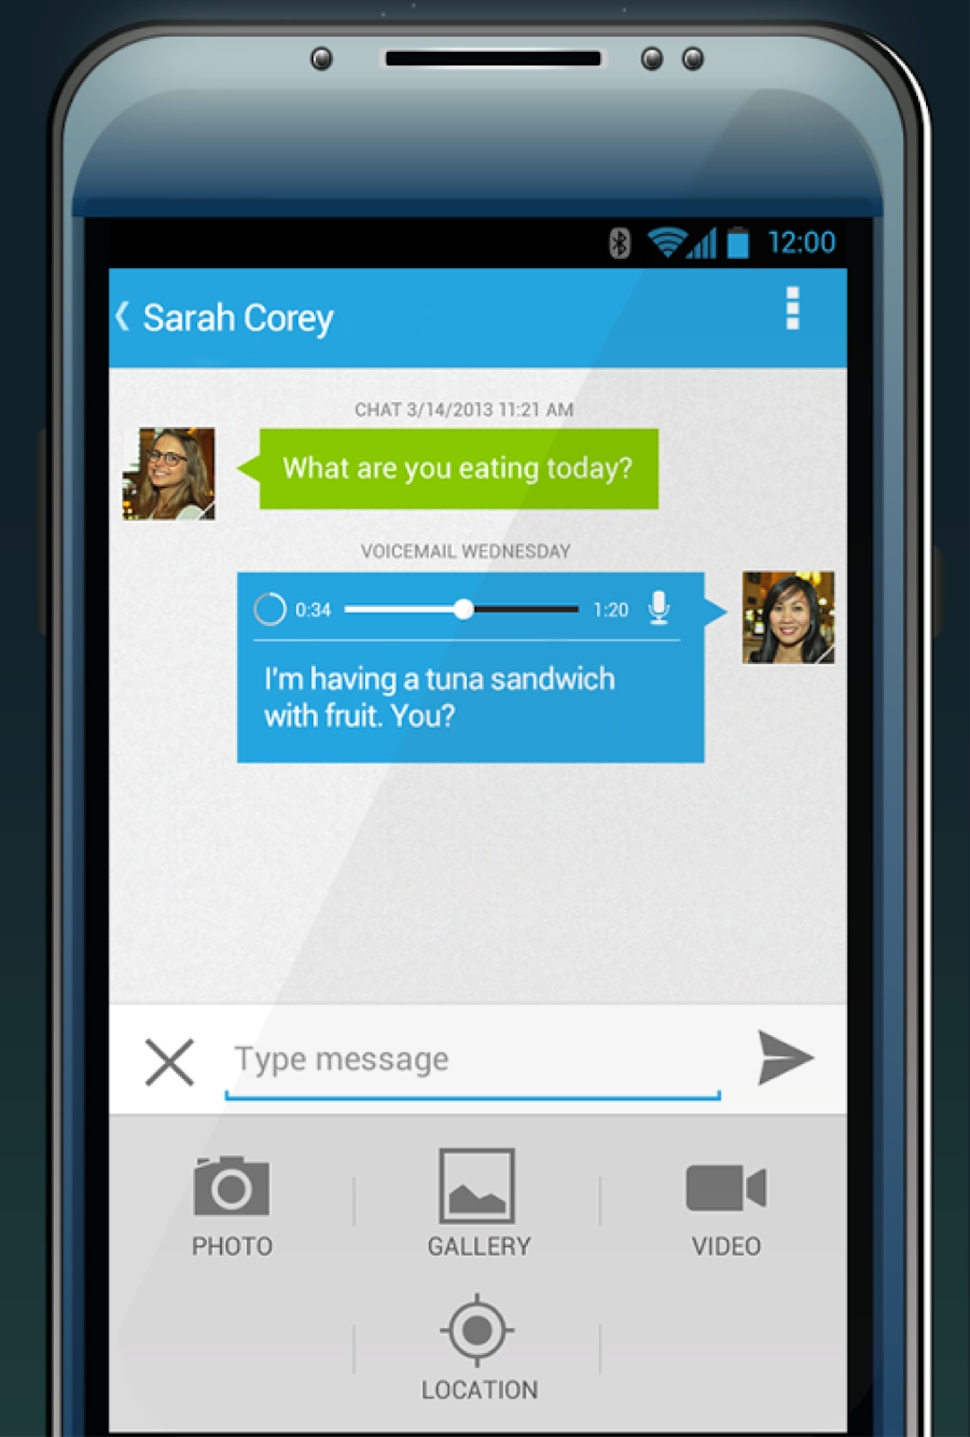 Cloud Phone Software - Android visual voicemail